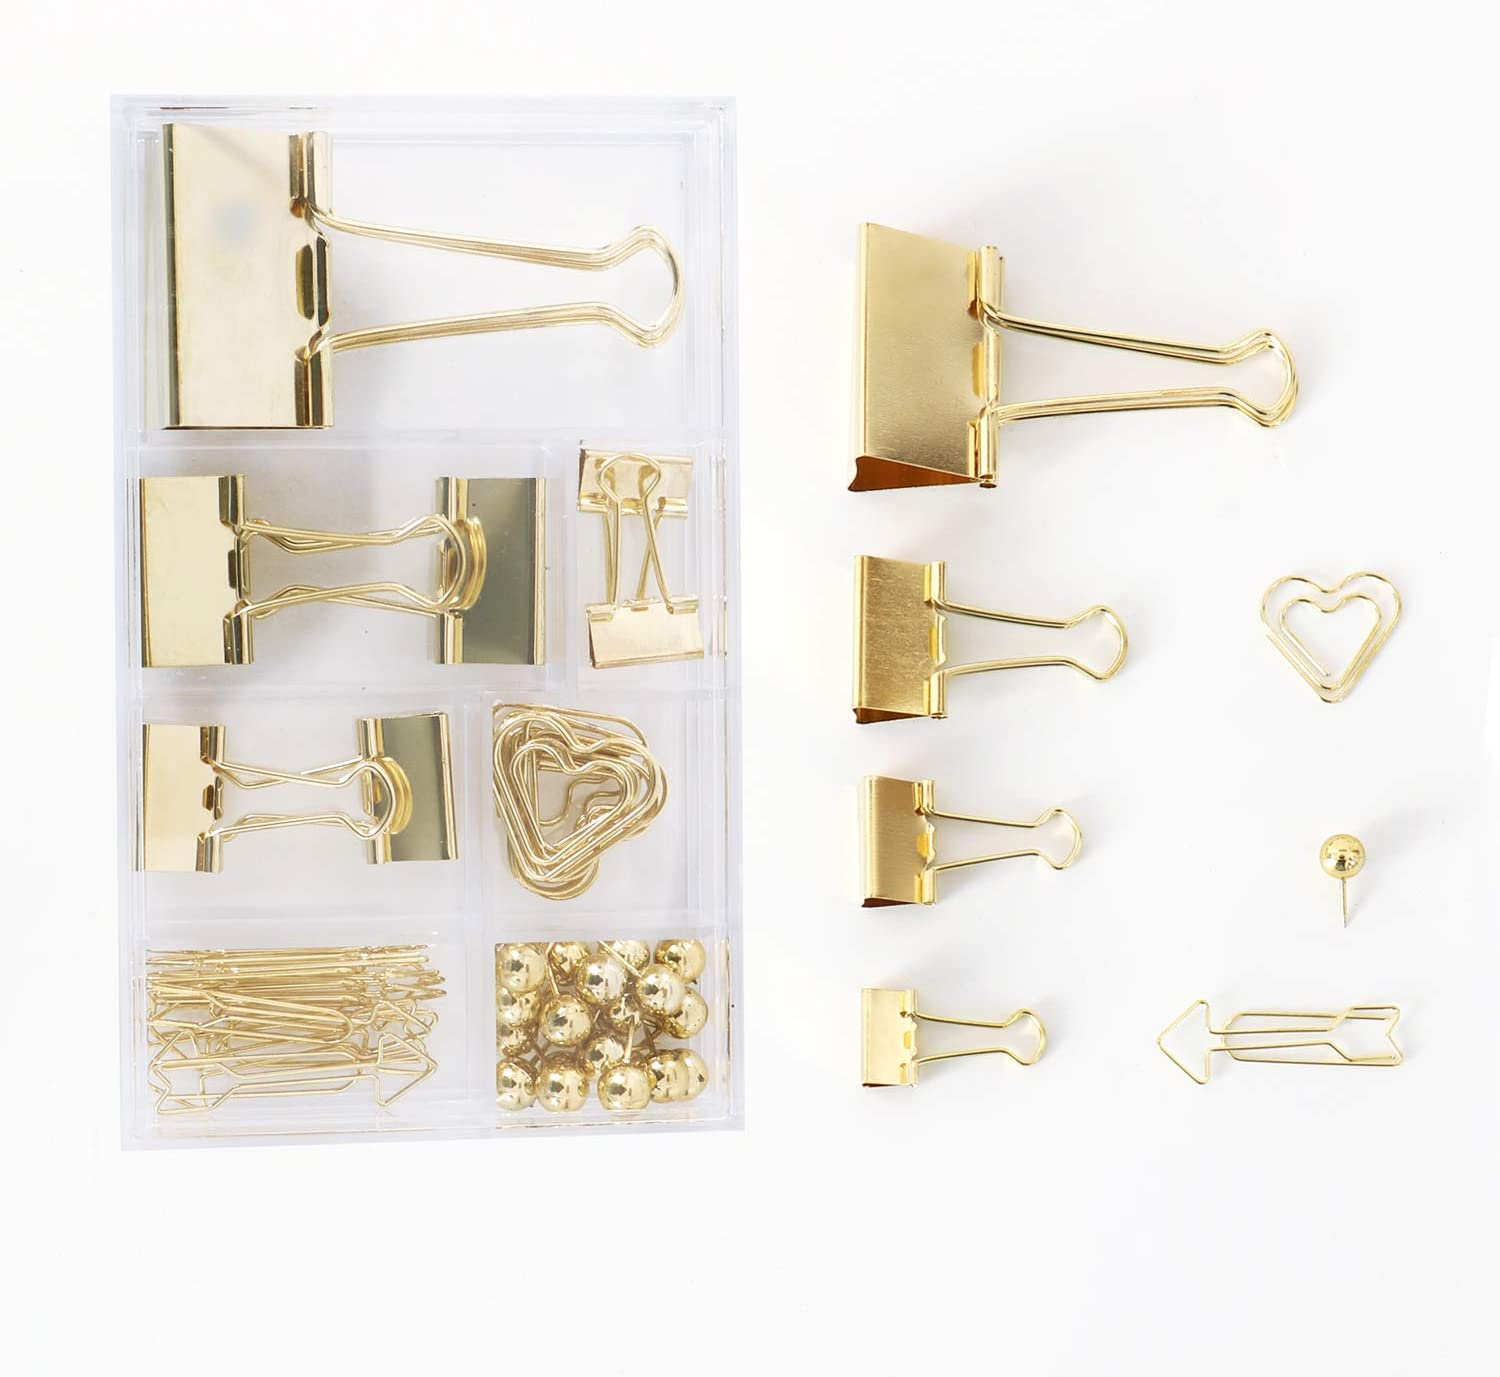 Binder Clips Assorted 4 Sizes, Arrow-Shaped Paper Clips, Heart-Shaped Paper Clips, Push Pins, Metal Fold Back Clips with Transparent Box, for Office School Home Desk Supplies, 47pcs(Gold)